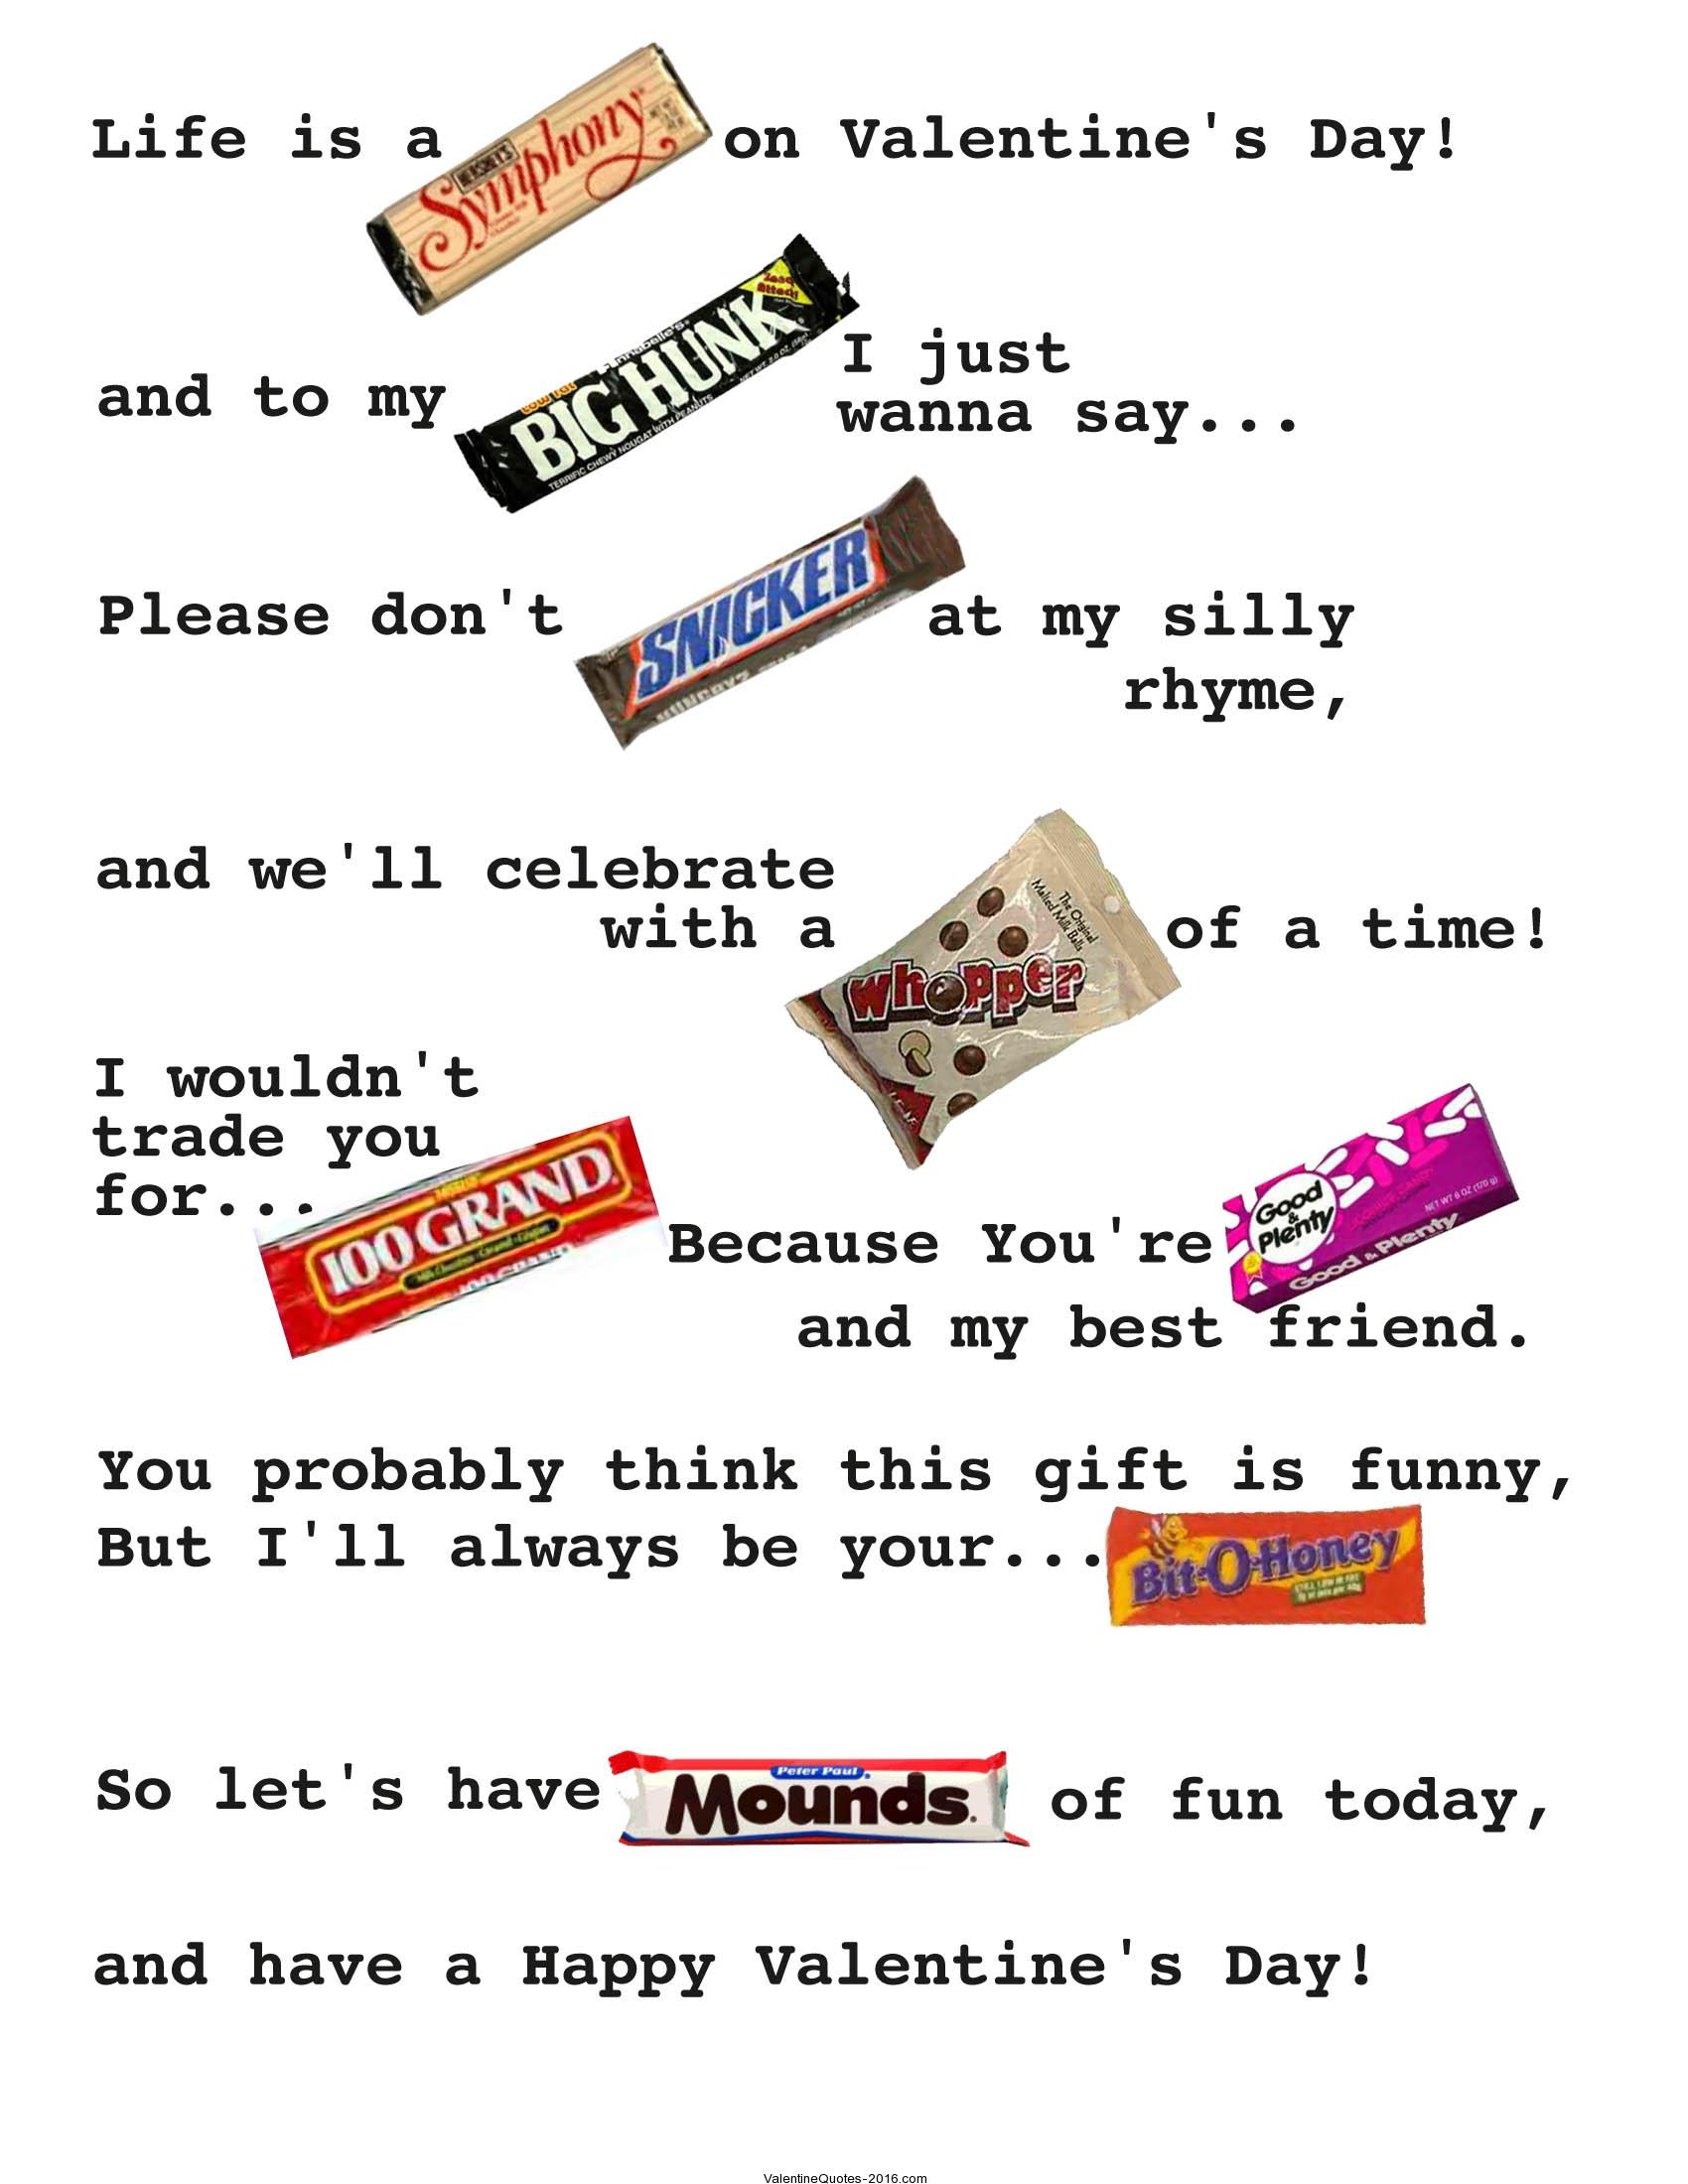 Funny Valentine Poems For Friends : funny, valentine, poems, friends, Valentine, Design:, Boyfriend, Funny, Poems